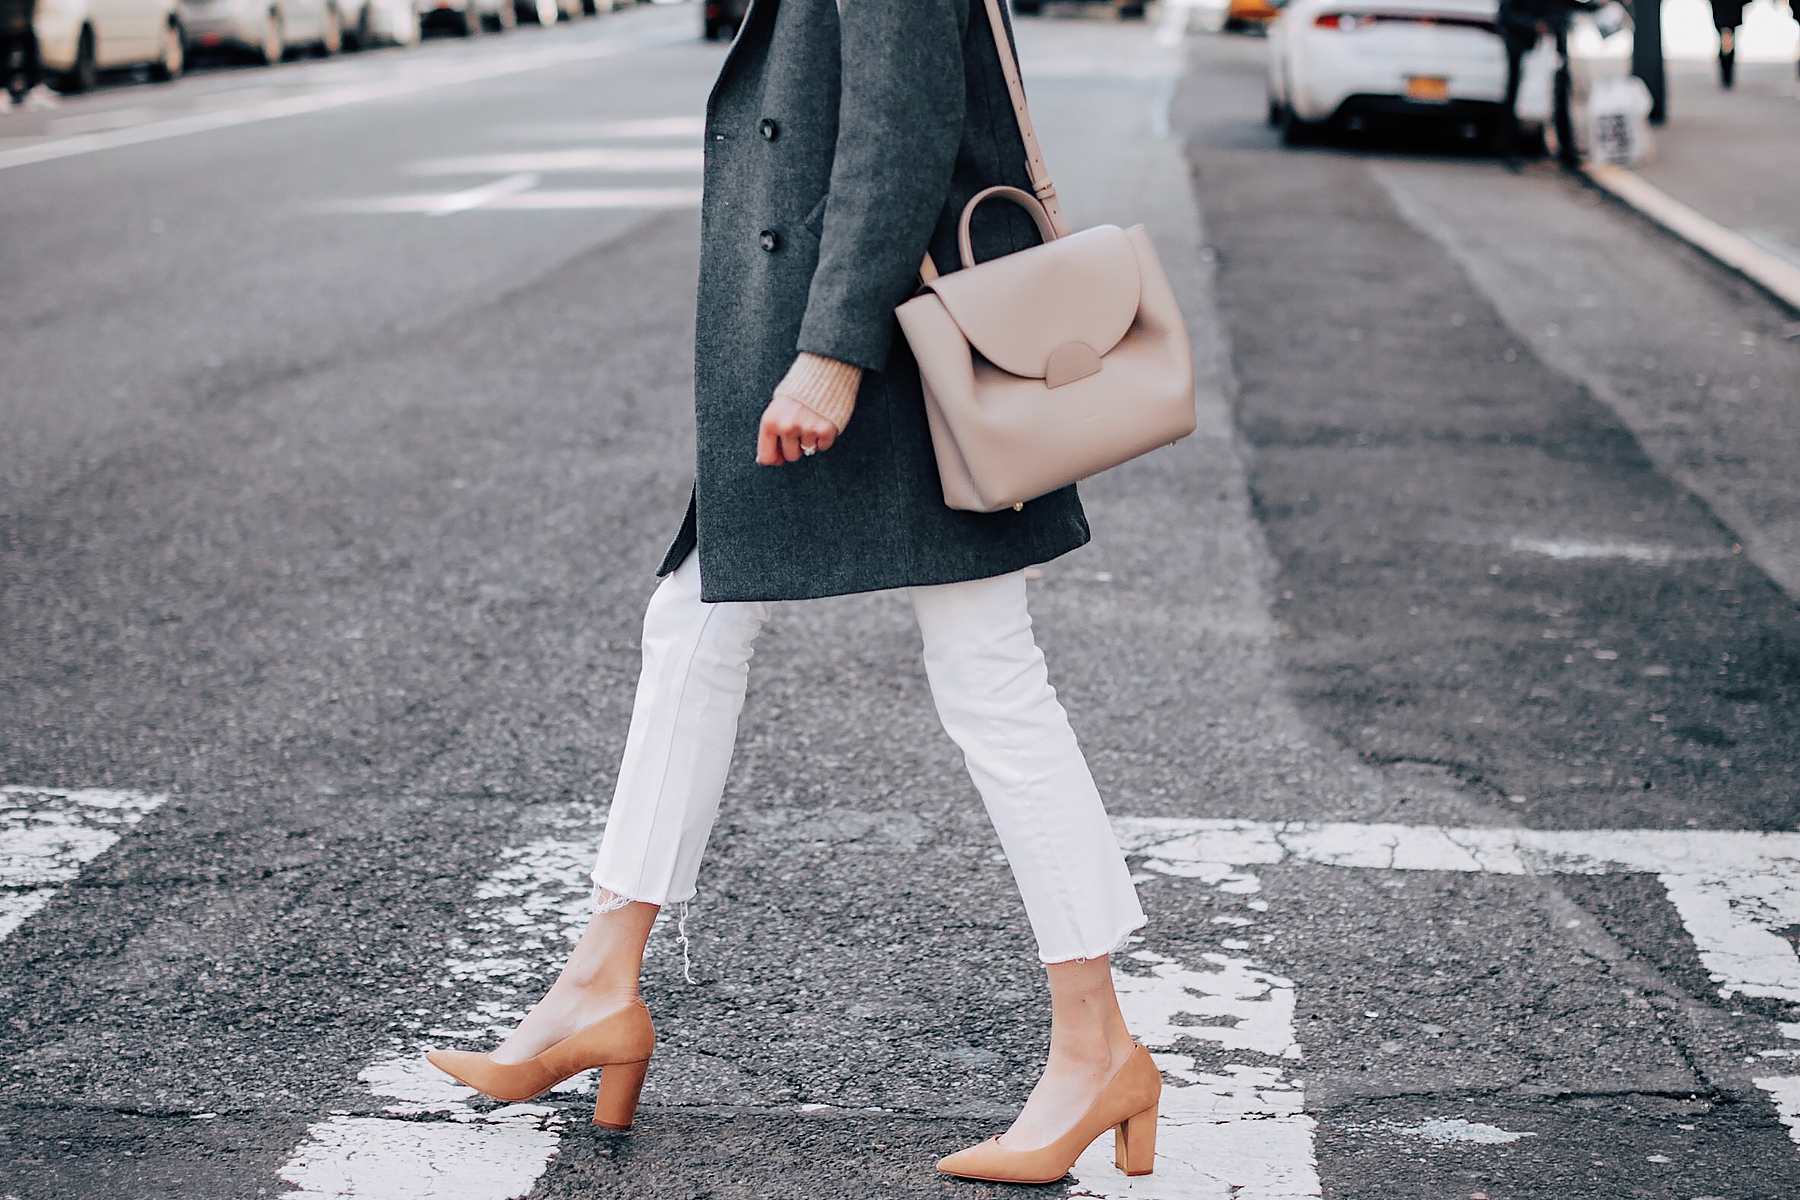 Woman Wearing HM Grey Wool Coat Polene Grey Handbag Everlane White Crop Ankle Jeans Tan Pumps Fashion Jackson Fashion Blogger Street Style NYFW